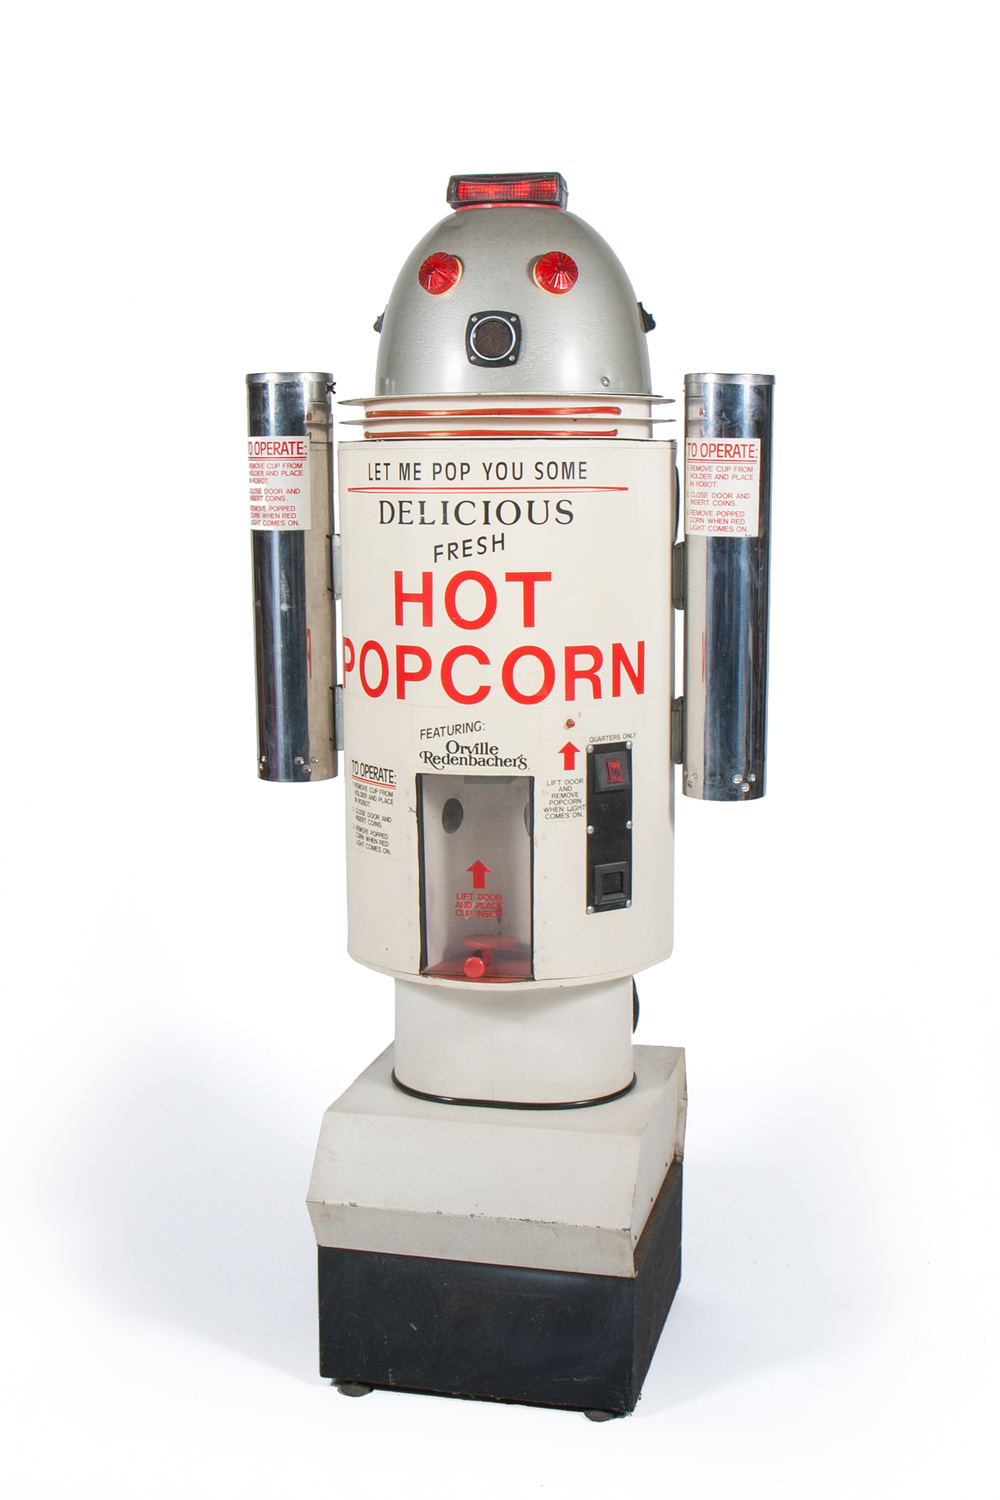 Hot Popcorn Dispensing Machine Robot (Orville 1987) - Height 5'8""